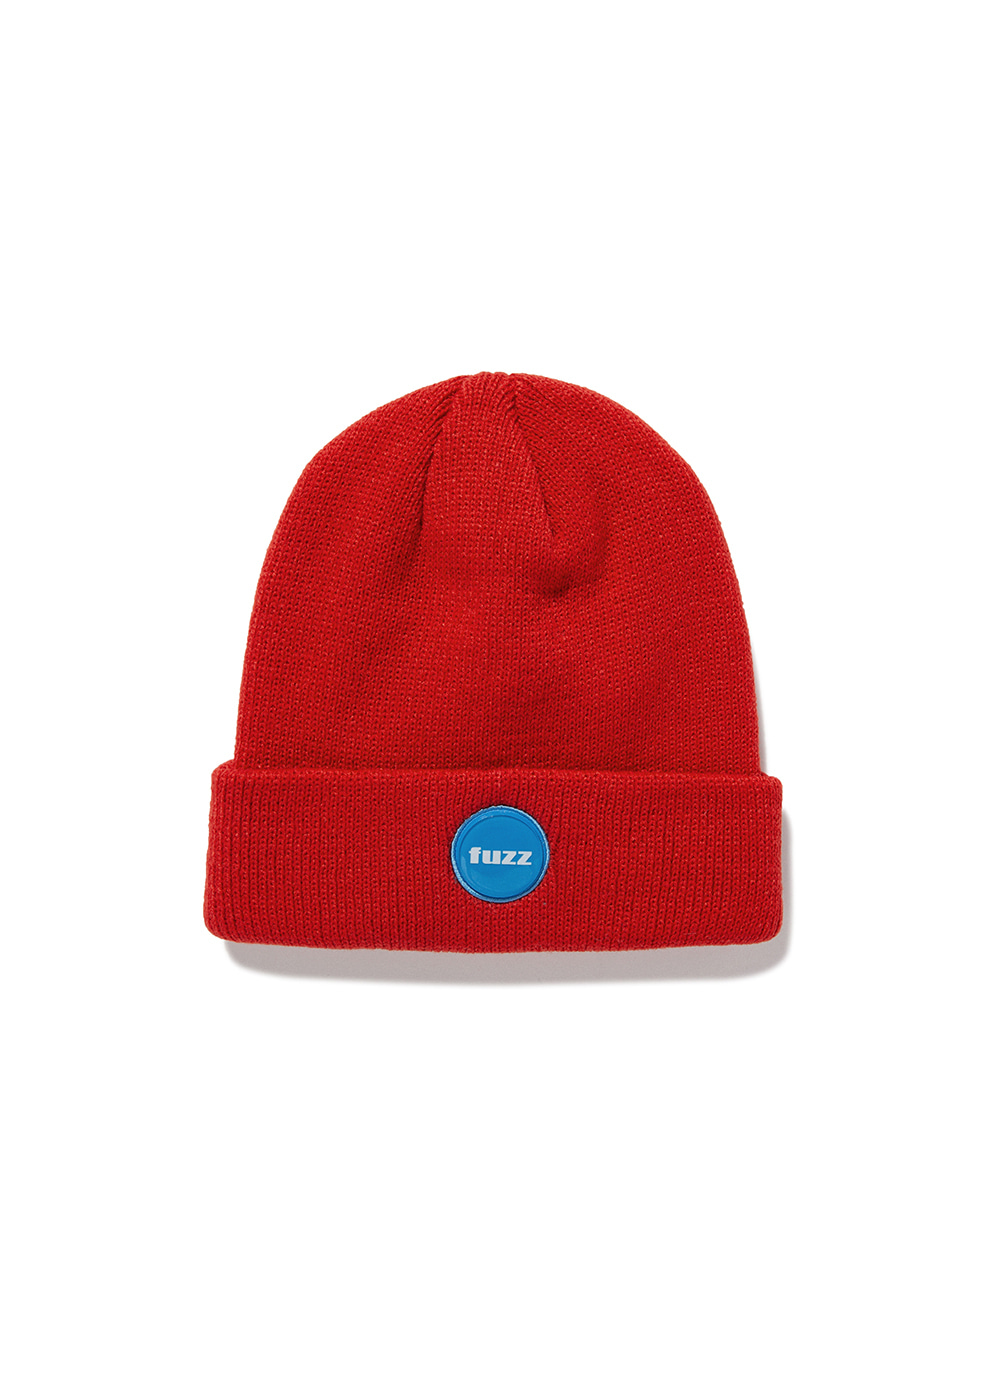 FUZZ EPOXY LABEL BEANIE red